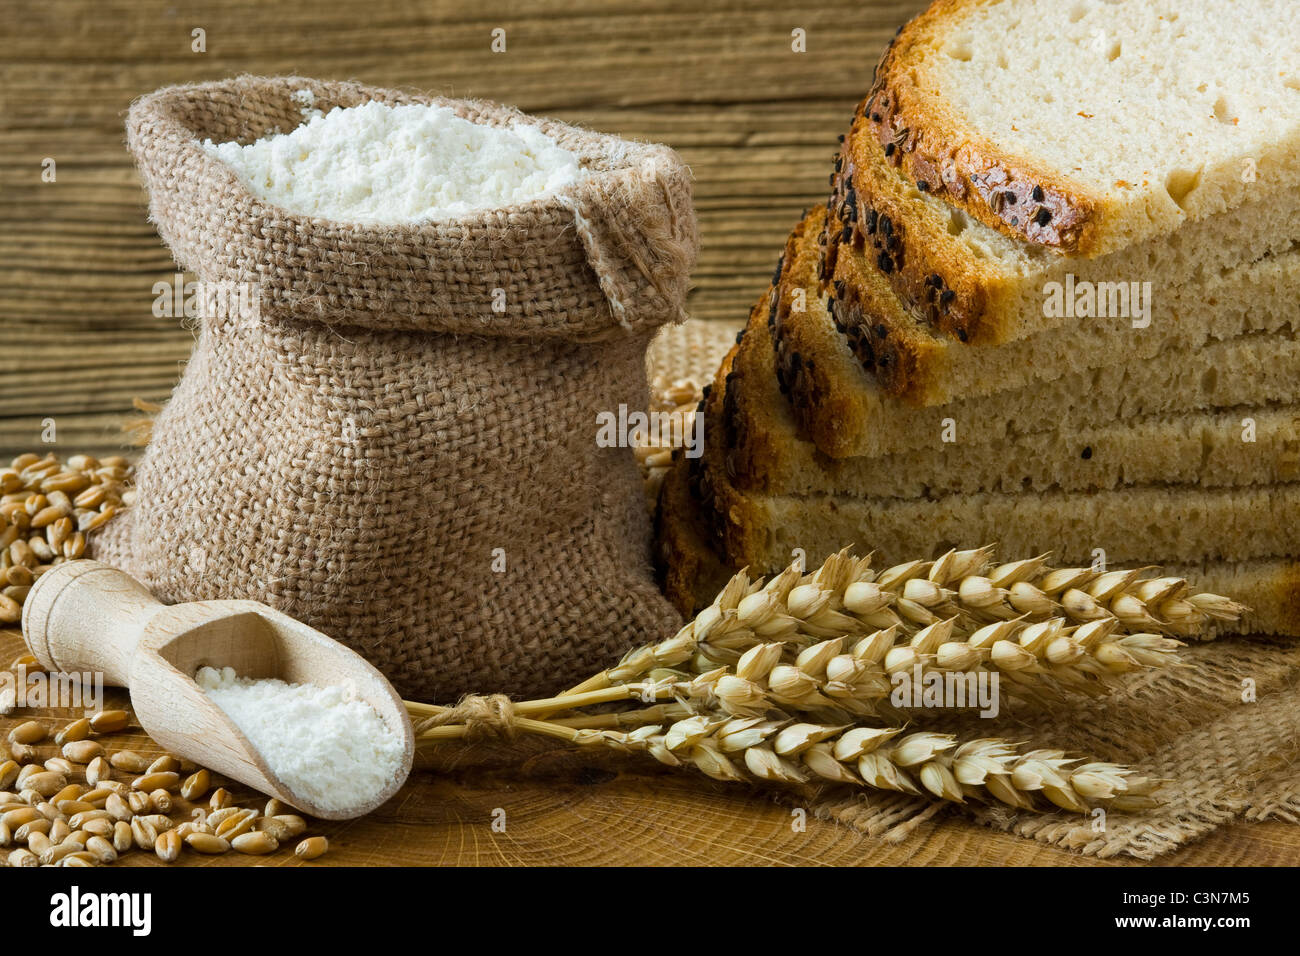 Fresh homemade bread and flour in small burlap bag - Stock Image